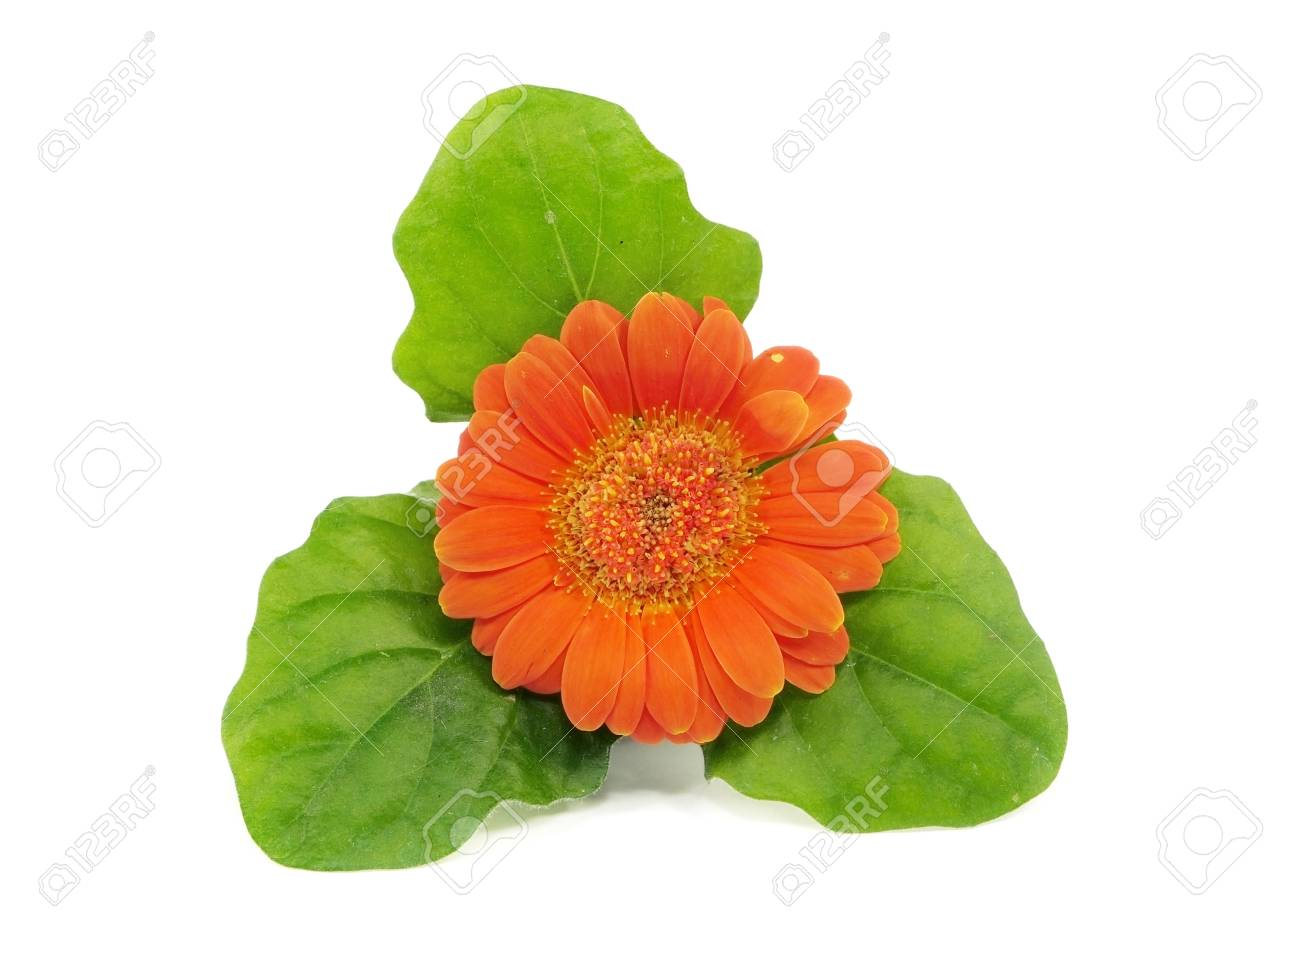 Orange gerbera flower on a white background stock photo picture and orange gerbera flower on a white background stock photo 13209240 mightylinksfo